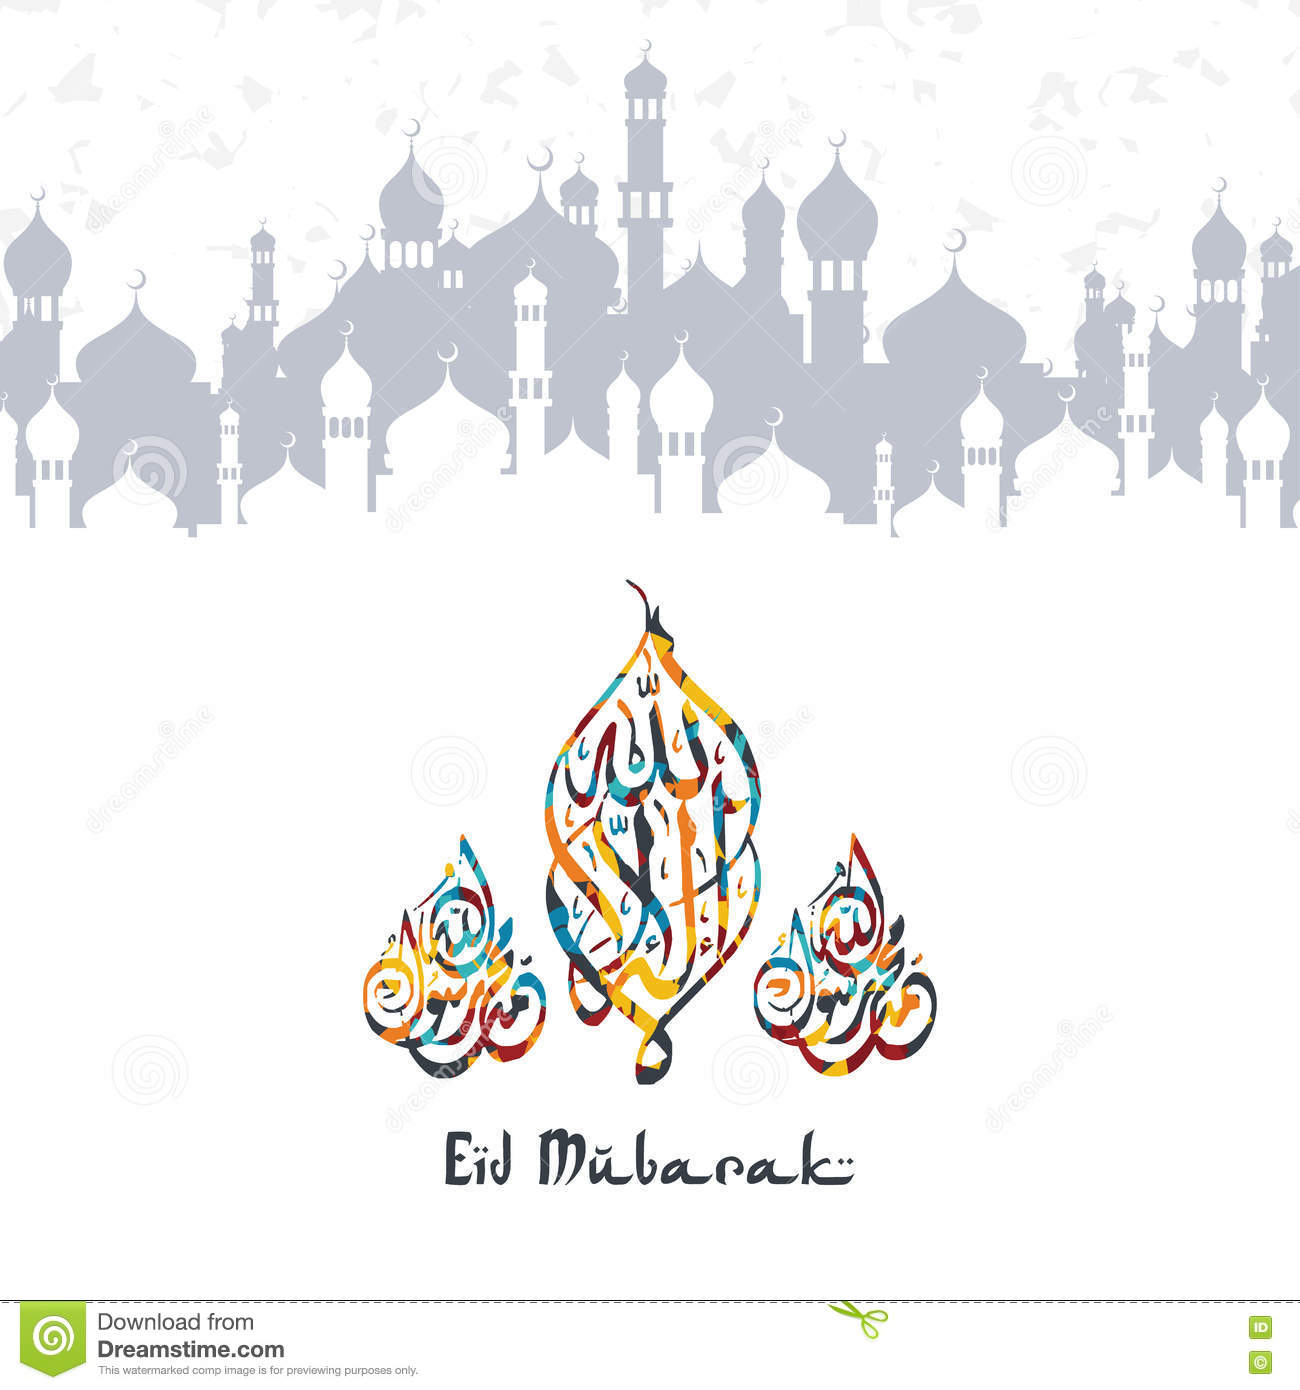 https://thumbs.dreamstime.com/z/happy-eid-mubarak-greetings-arabic-calligraphy-art-theme-illustration-73535470.jpg